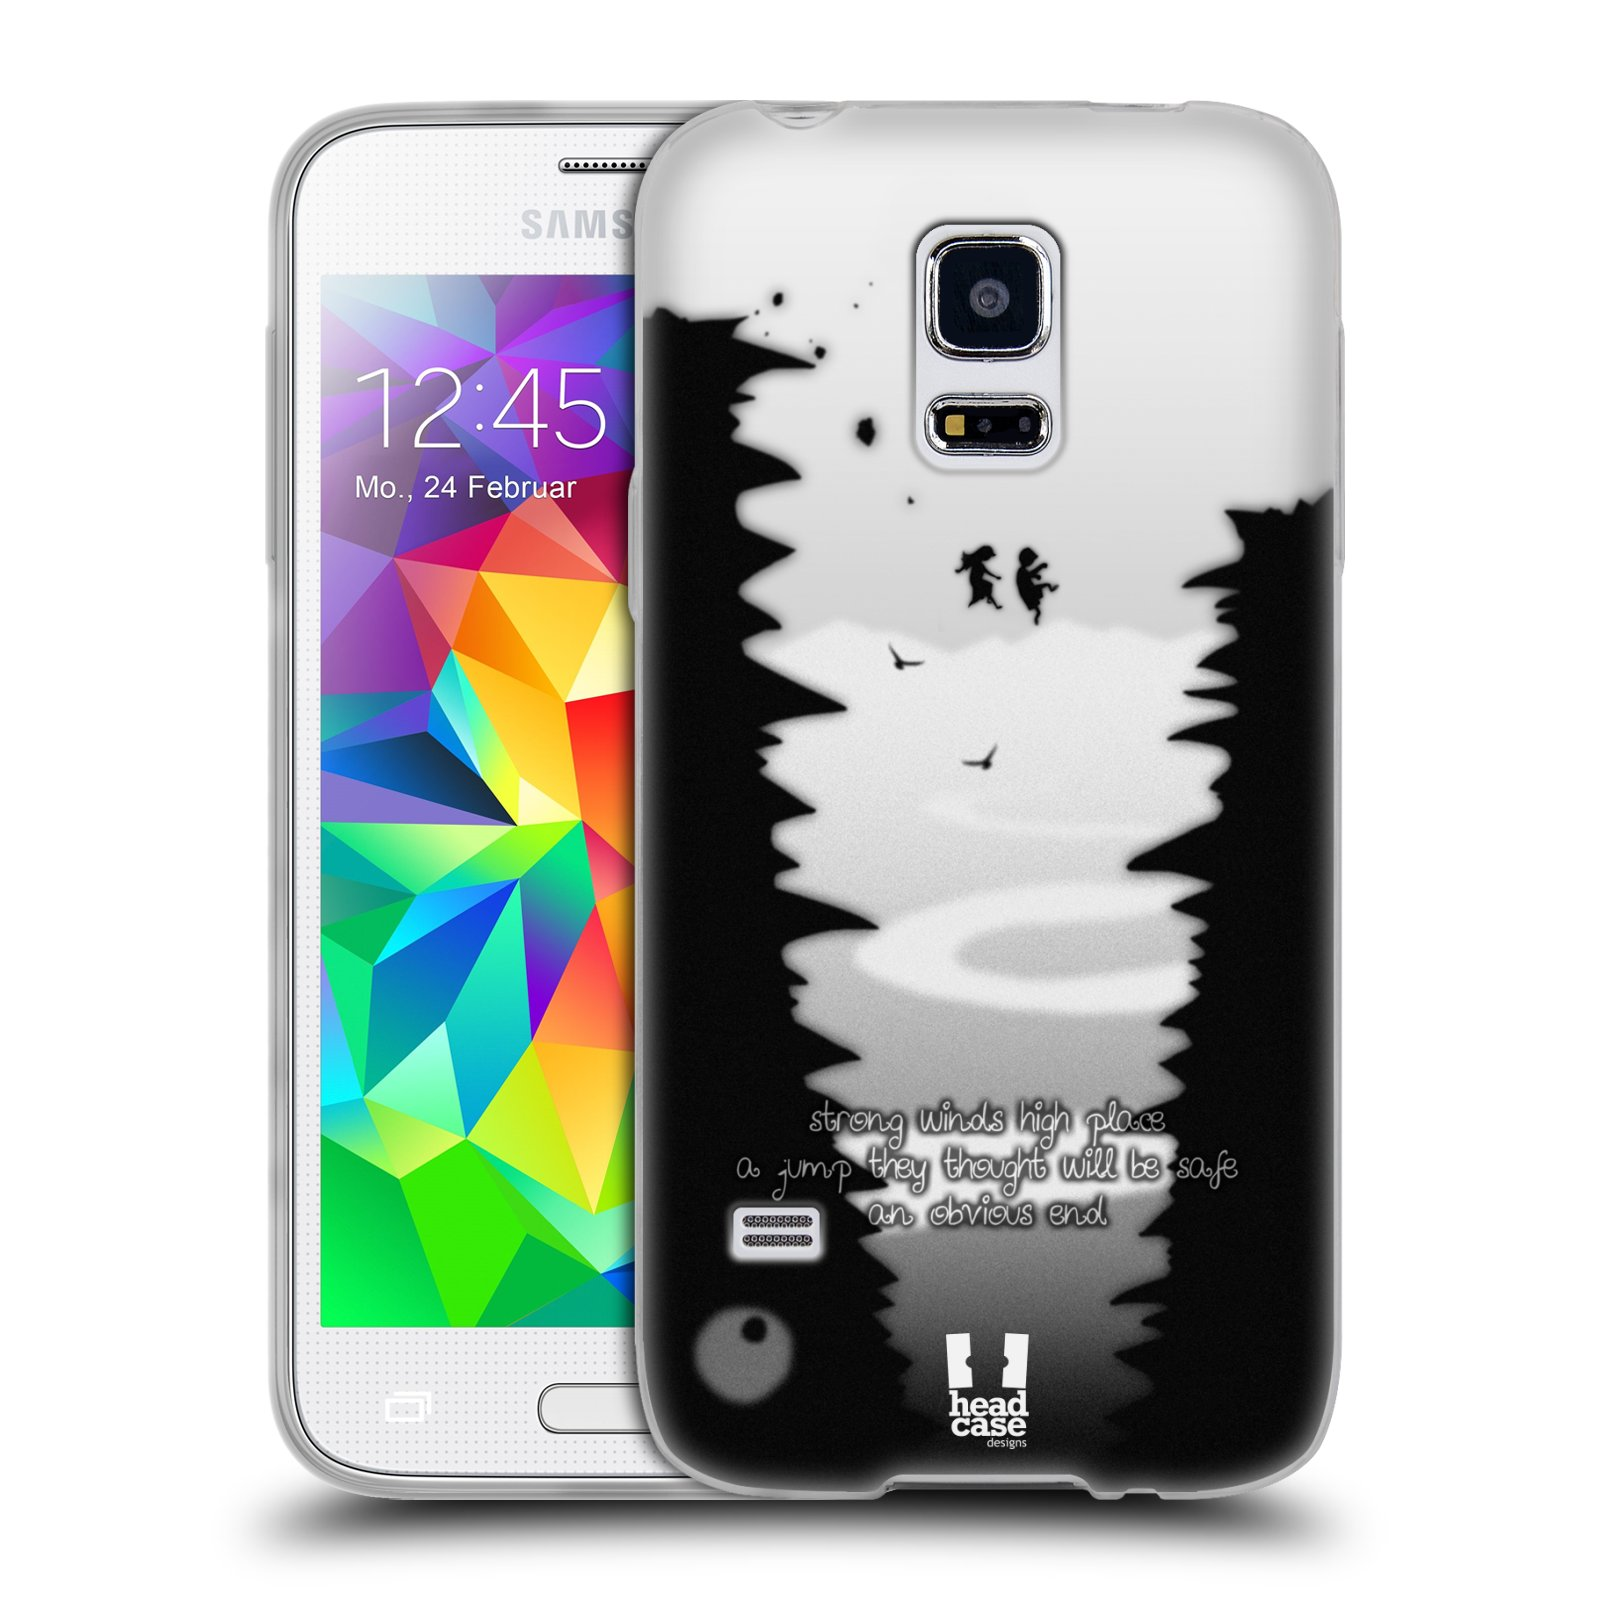 Image Result For Galaxy S Mini Pulsa Online